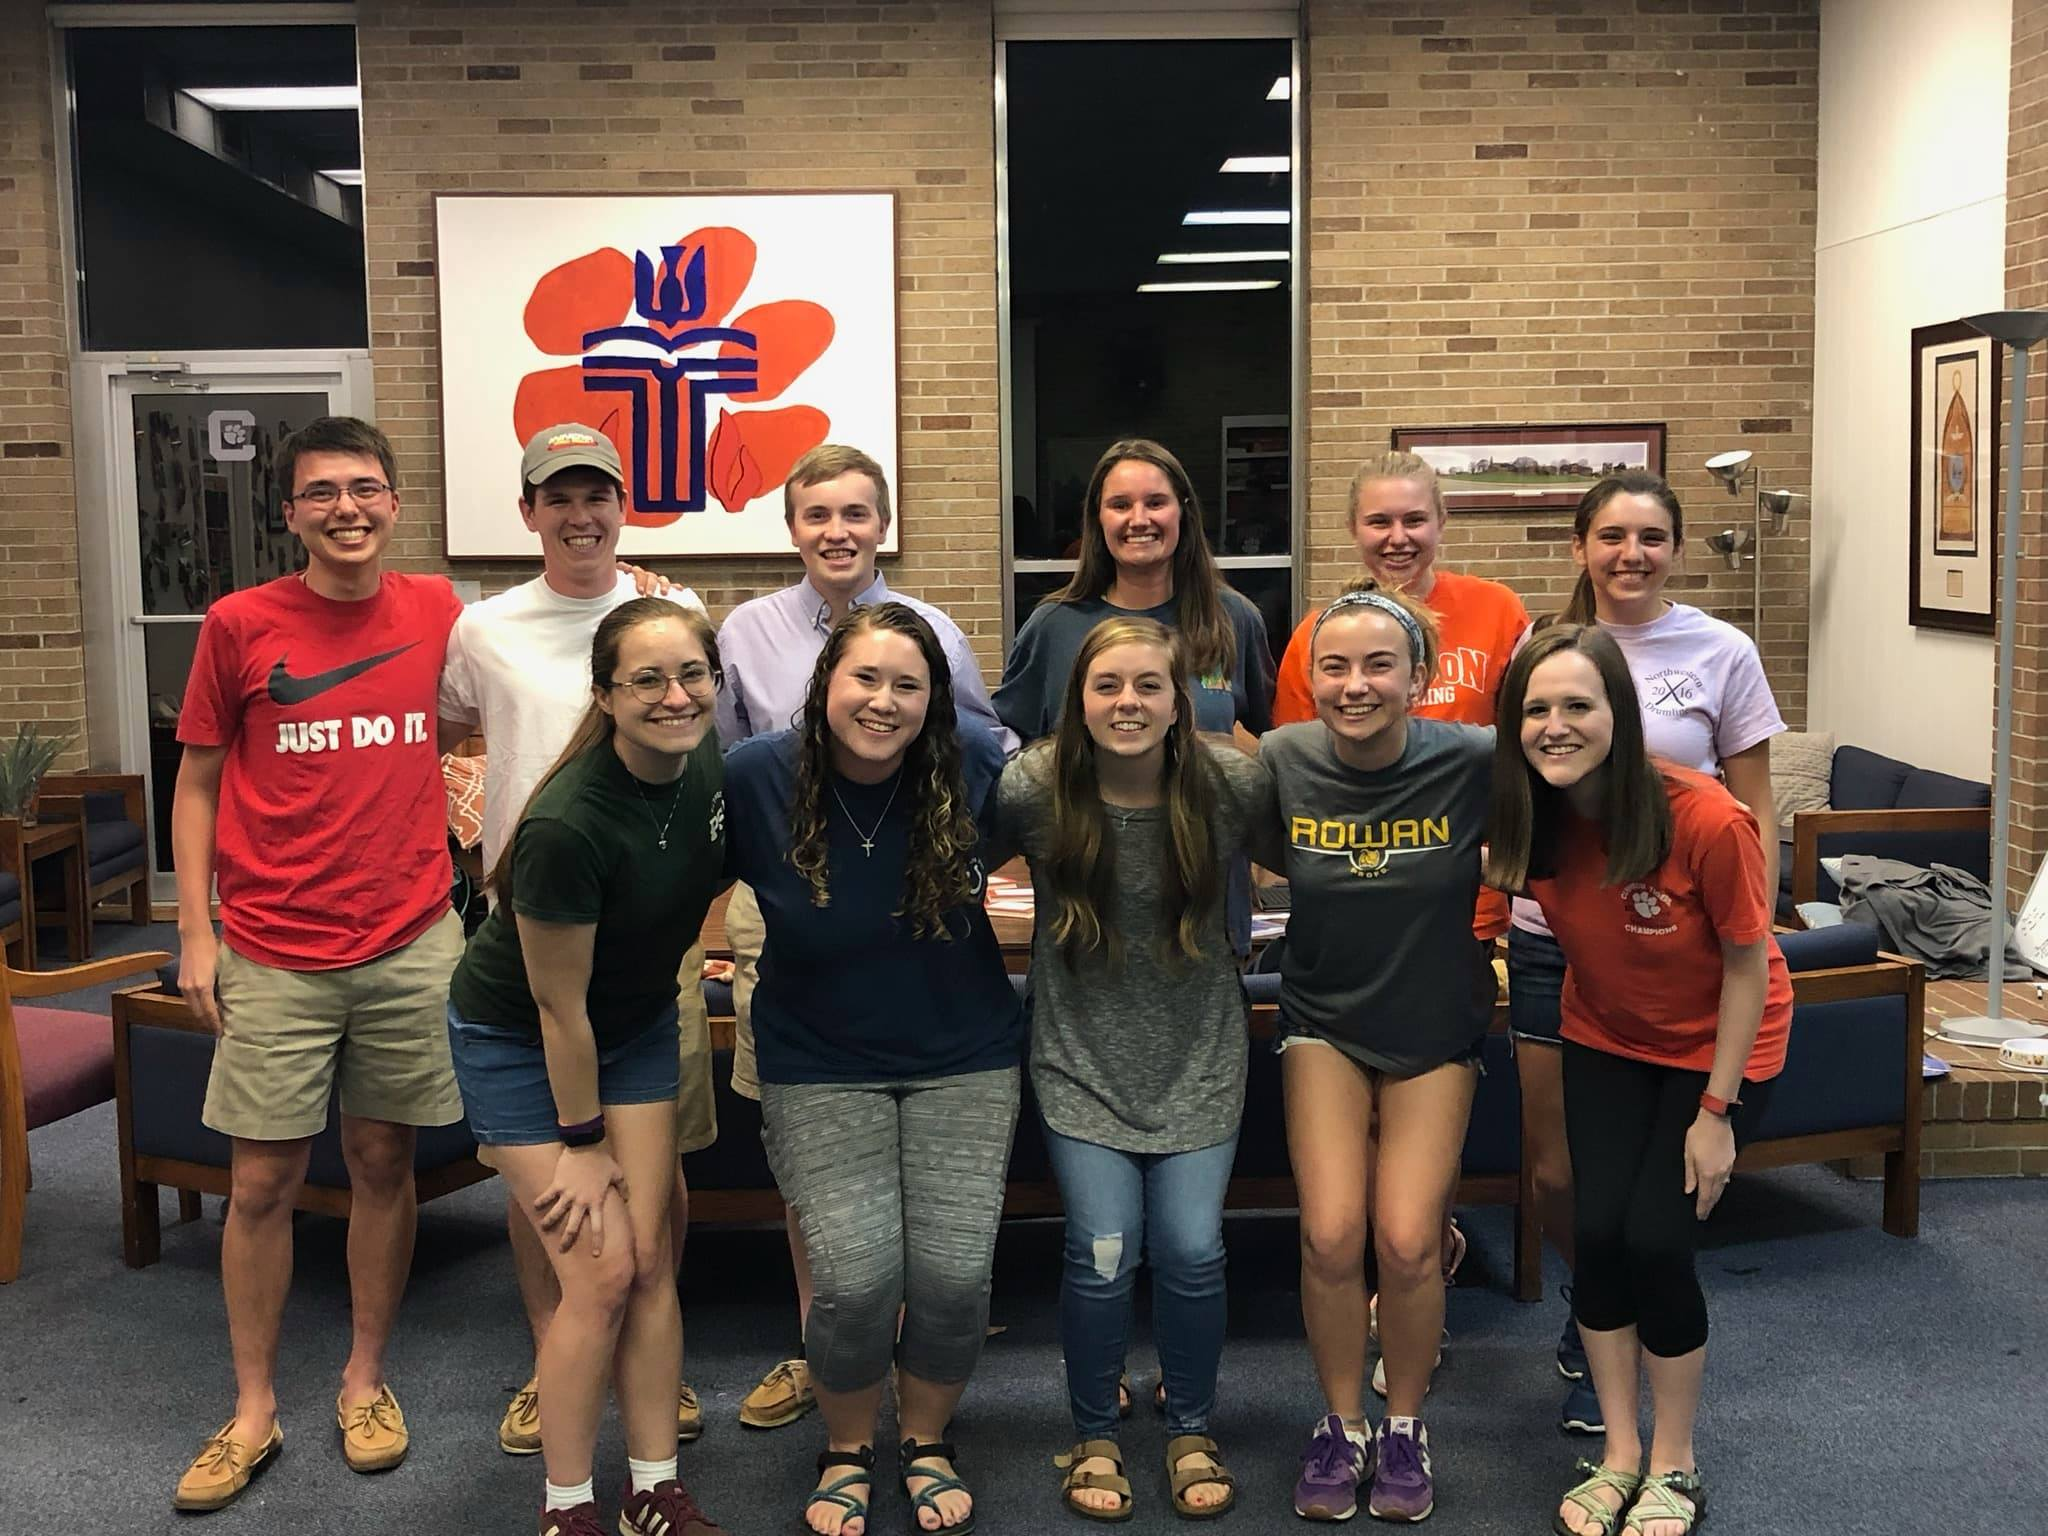 Top Row:  Ethan Wescoat (Fundraising), Scott Northup (Outreach), Freddy Matney (Music), Reid Sutton (Intramural), Emily Madsen (Community), and Kayla Bigham (Moderator)   Bottom Row:  Kate Mills (Vice Moderator), Kaitlyn Truesdale (Media), Bridget Wilson (Mission), Maddy Cost (Fellowship), and Allison Horres (Worship)